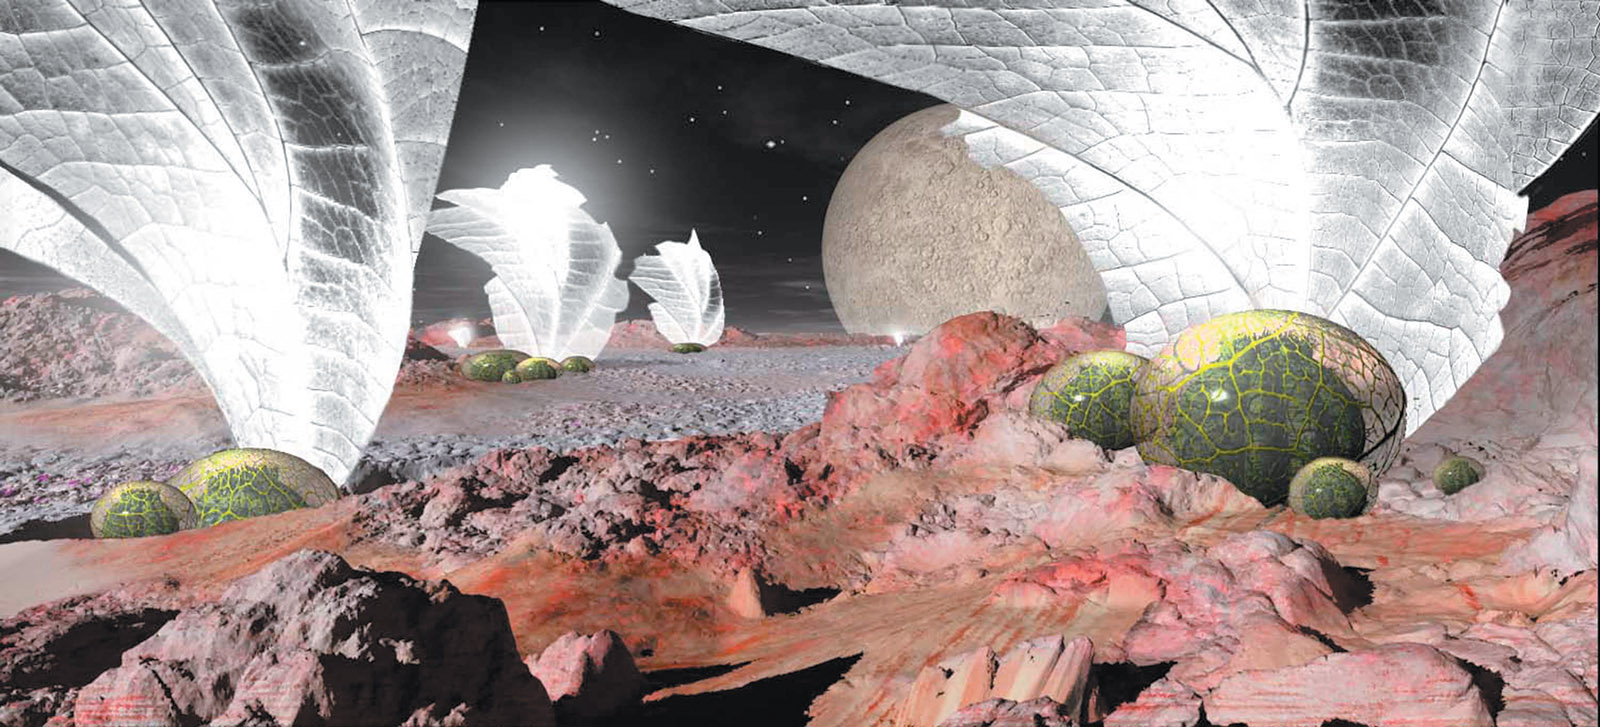 An illustration of Freeman Dyson's vision of 'Noah's Ark culture'—a space operation in which, 'sometime in the next few hundred years, biotechnology will have advanced to the point where we can design and breed entire ecologies of living creatures adapted to survive in remote places away from Earth.' Spacecraft resembling ostrich eggs will bring 'living seeds with genetic instructions' to planets, moons, and other 'suitable places where life could take root.' A new species of warm-blooded plants, 'kept warm by sunlight or starlight concentrated onto it by mirrors outside,' will enable the Noah's Ark communities to survive.